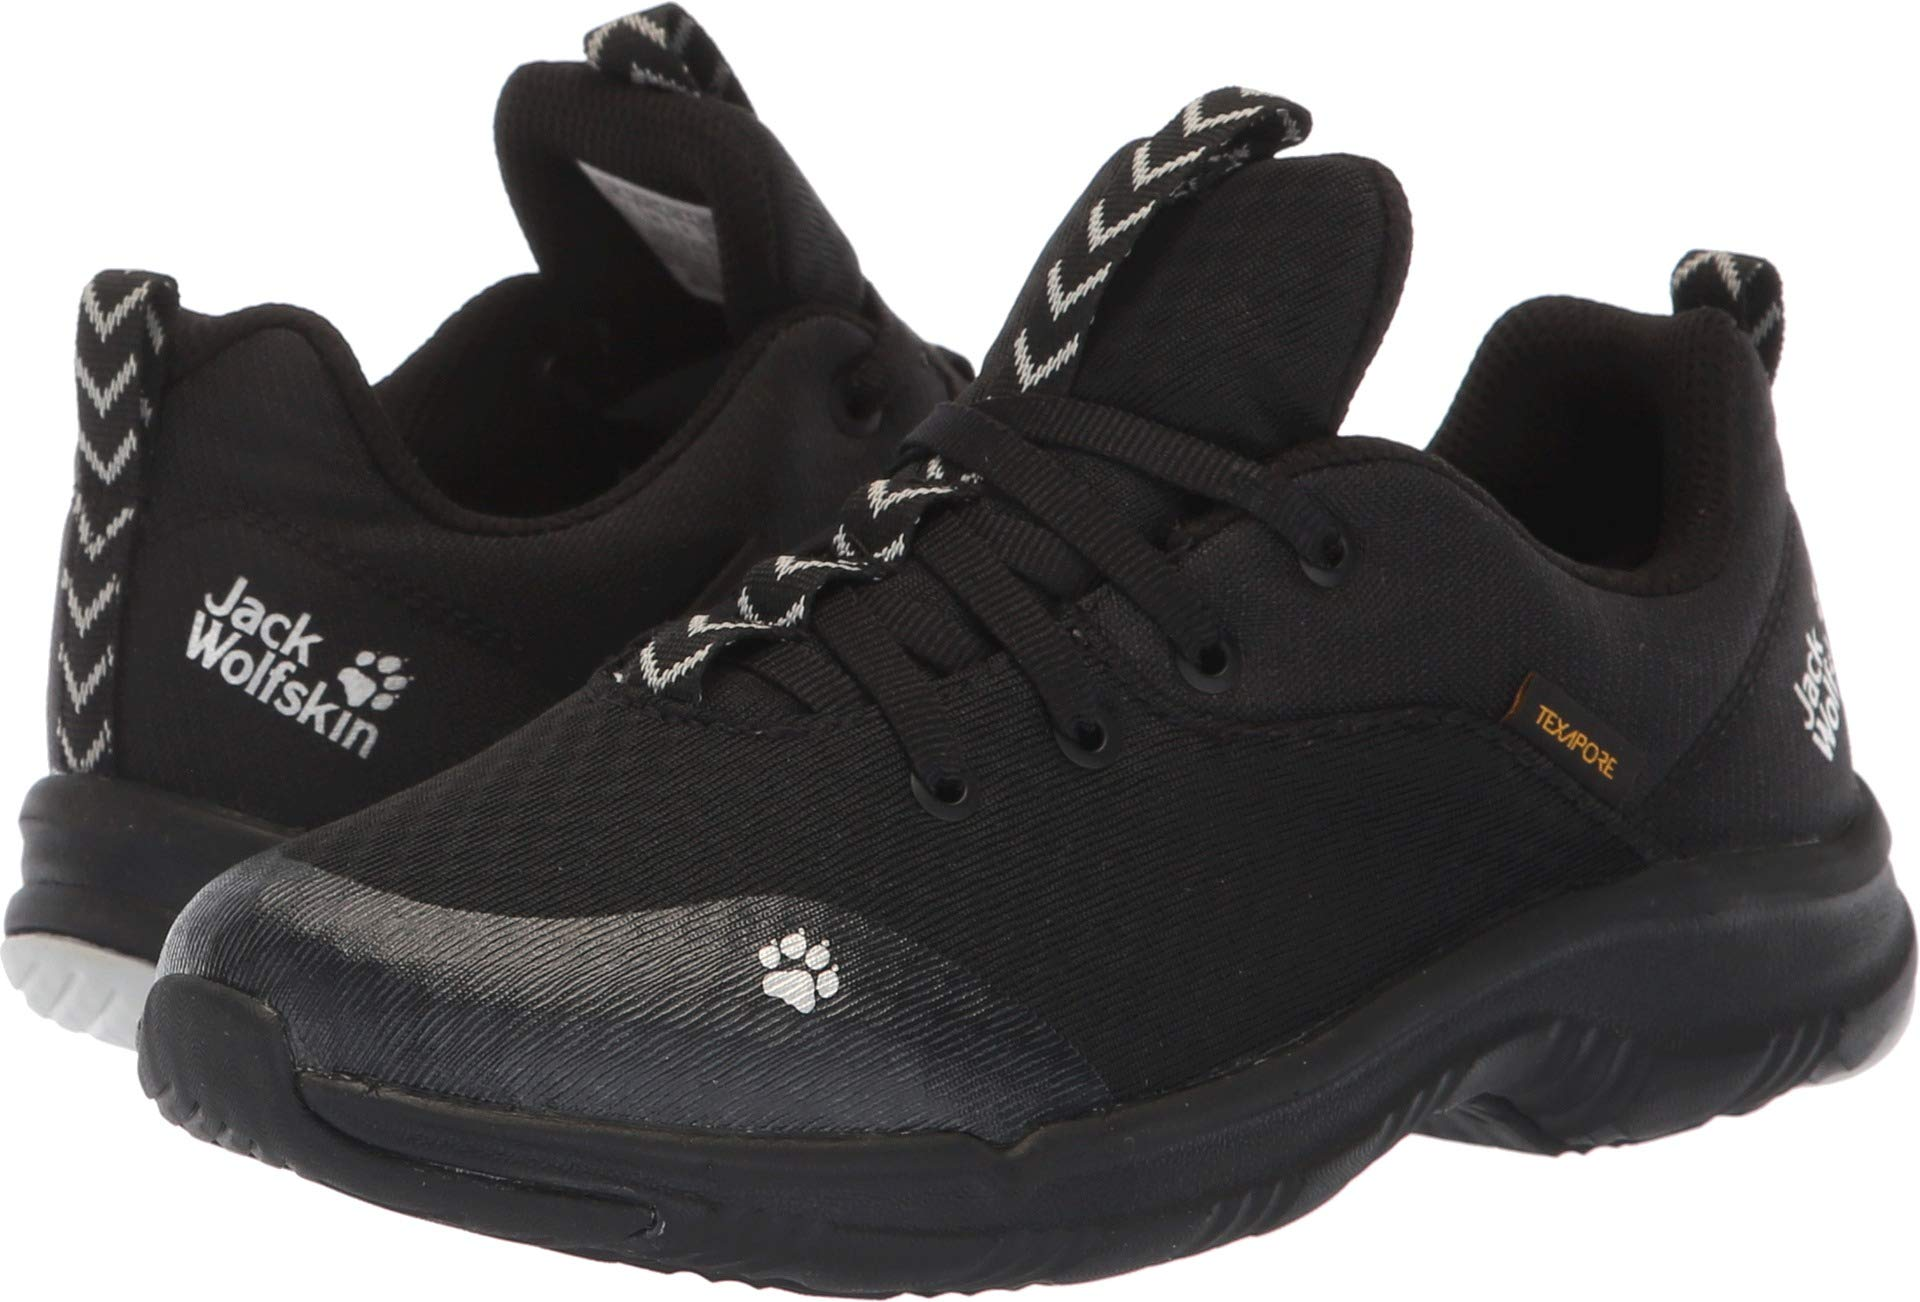 Jack Wolfskin Kids Unisex Phoenix Texapore Low (Toddler/Little Kid/Big Kid) Black 33 M EU